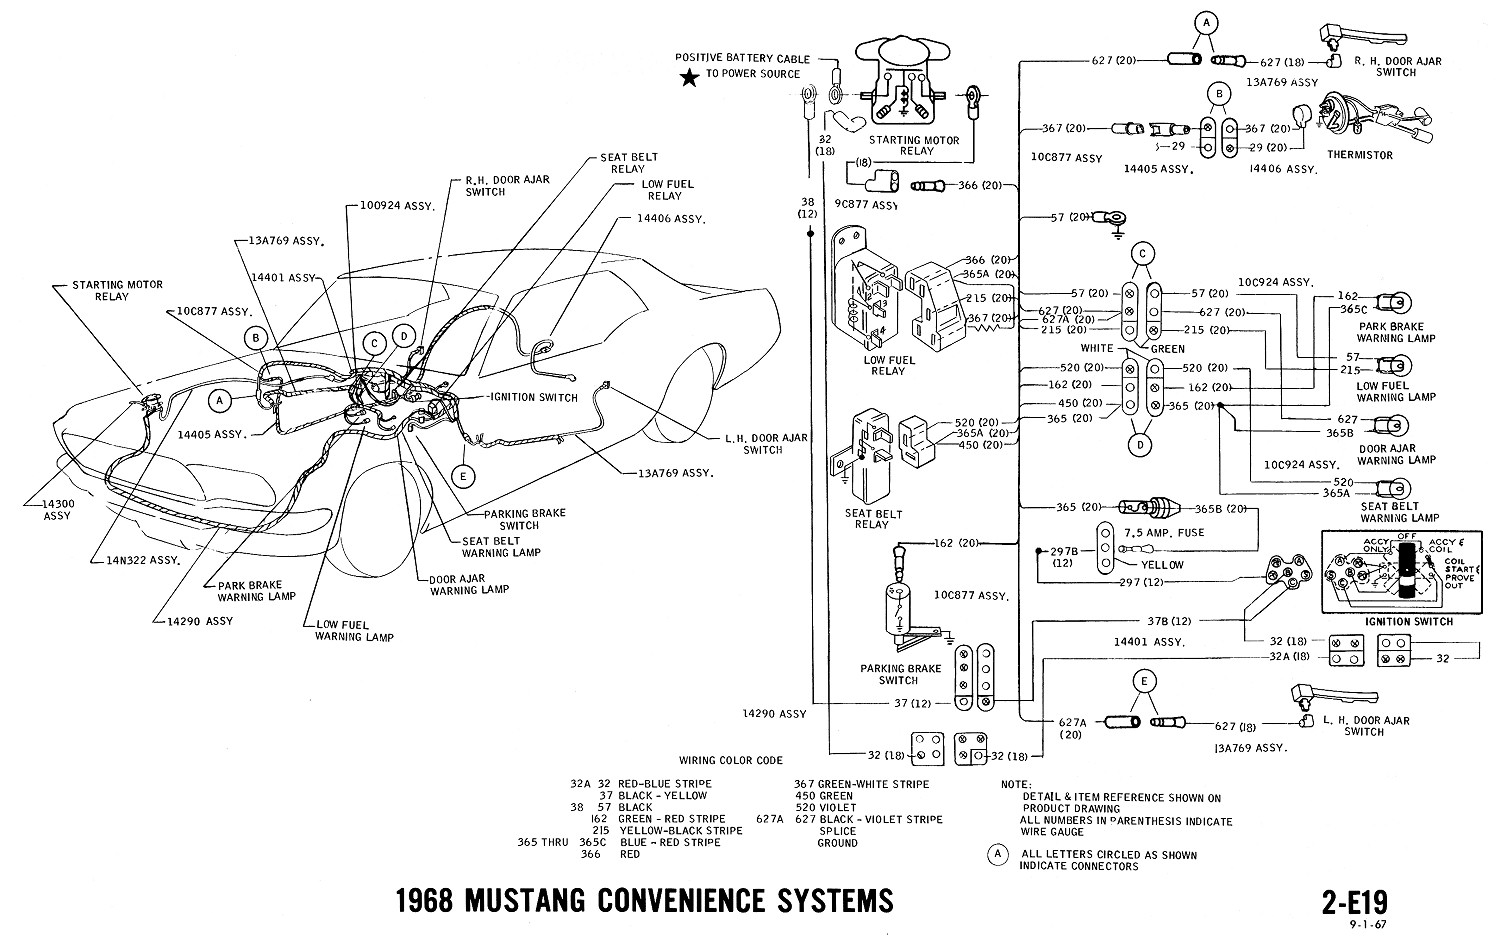 Bad Boy Mtv Wiring Schematic Electrical Diagrams Mowers Diagram 28 With Description